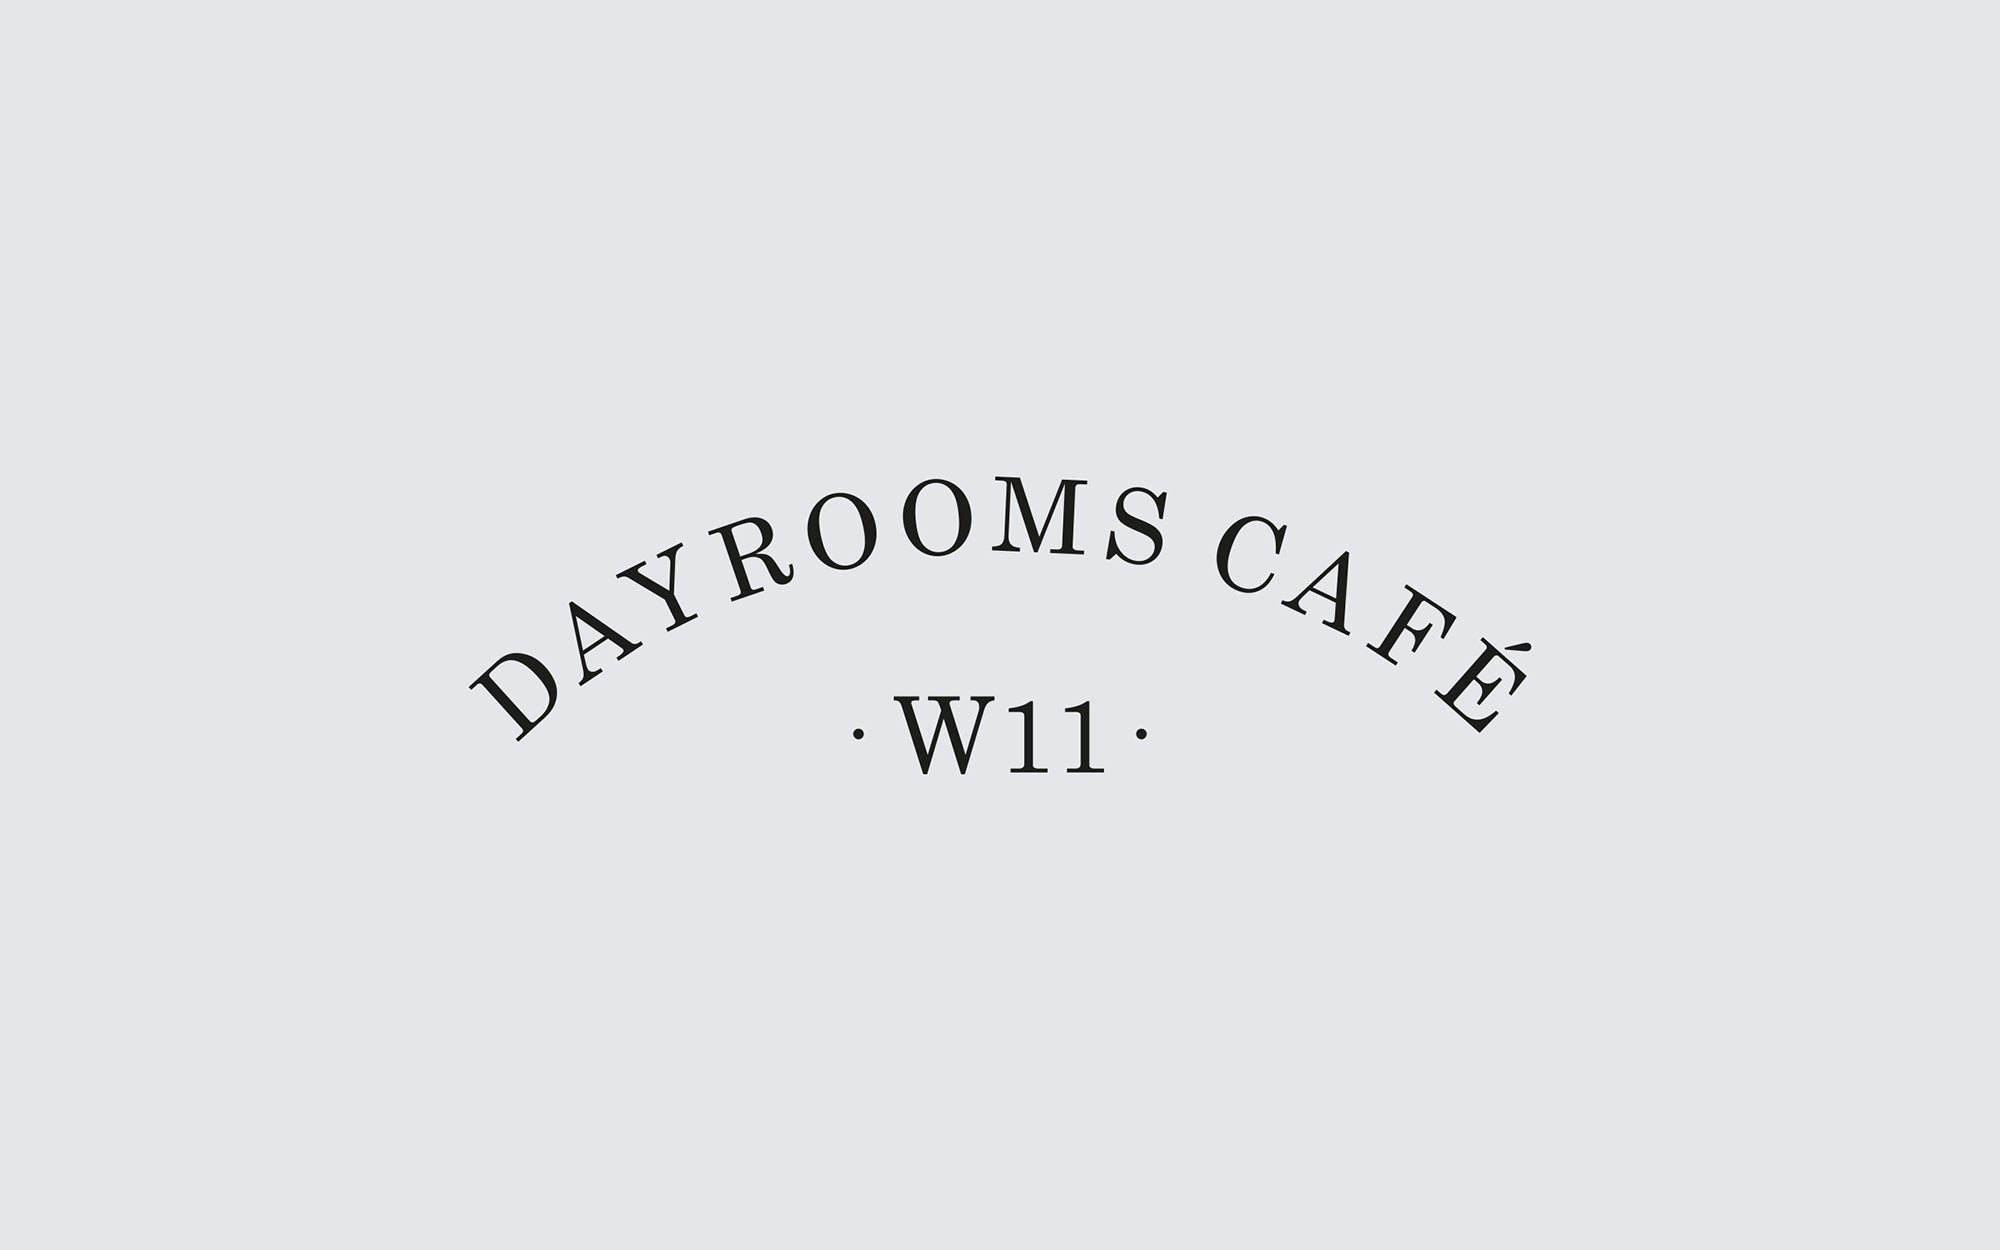 Two Times Elliott: The Dayrooms Café